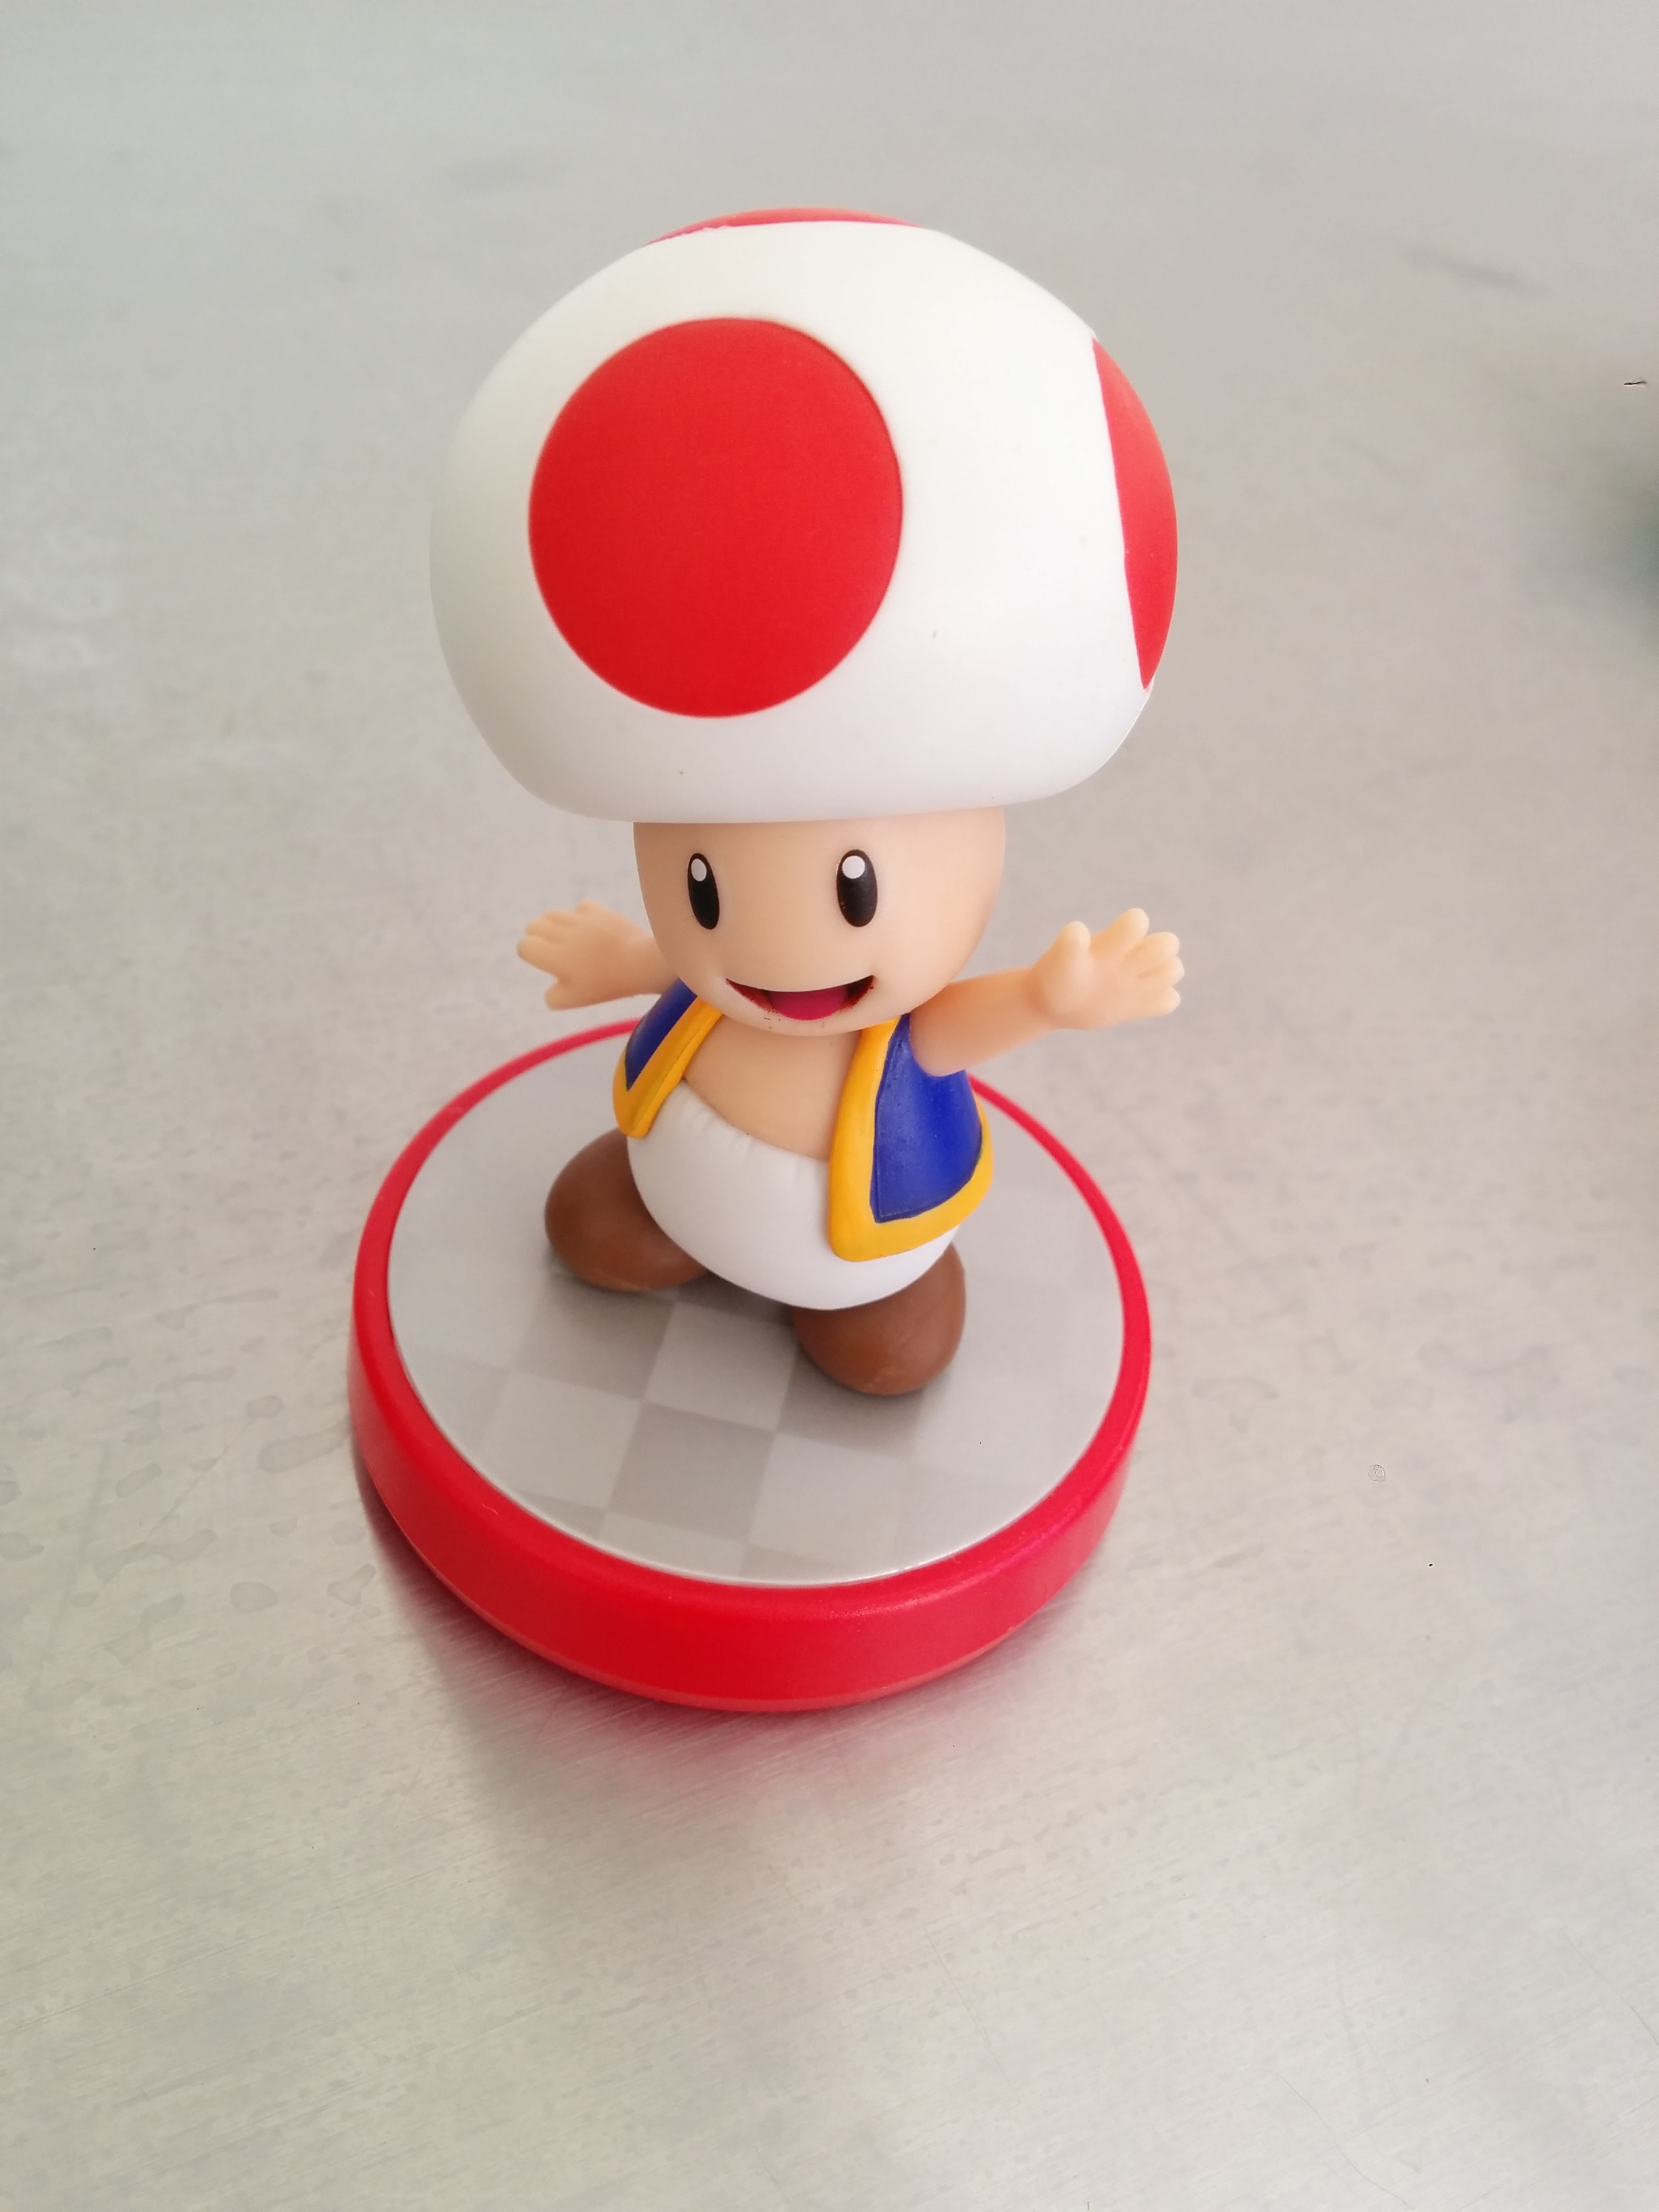 Ars Technica's own Sam Machkovech bought a Toad Amiibo as soon as he could. What? Stop judging him. He's a grown-up. He can own whatever toys he wants.